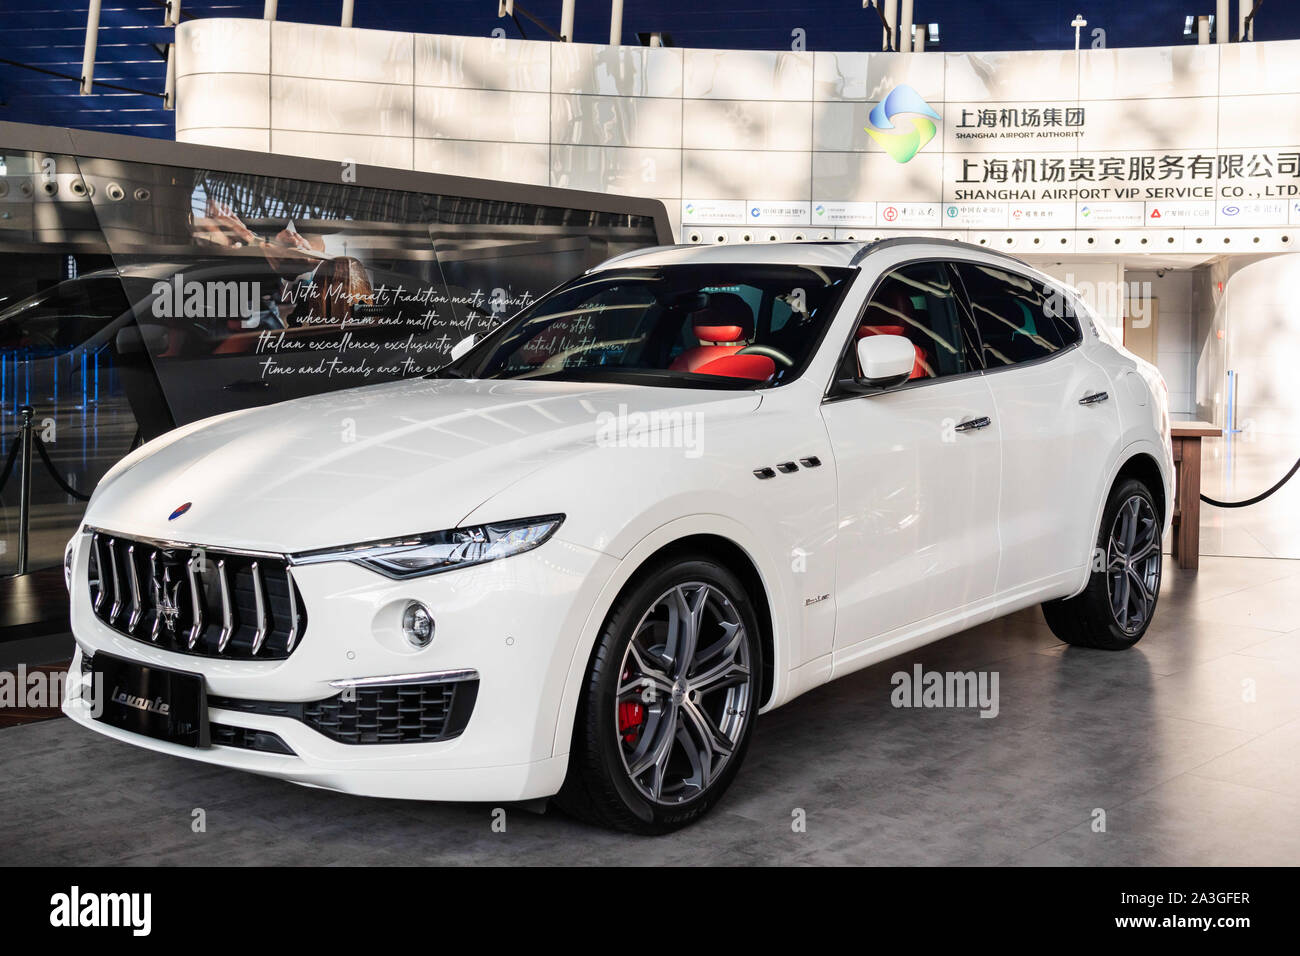 Shanghai China 3rd Oct 2019 Maserati Levante A Mid Size Luxury Crossover Suv Seen In Shanghai Pudong International Airport Credit Alex Tai Sopa Images Zuma Wire Alamy Live News Stock Photo Alamy